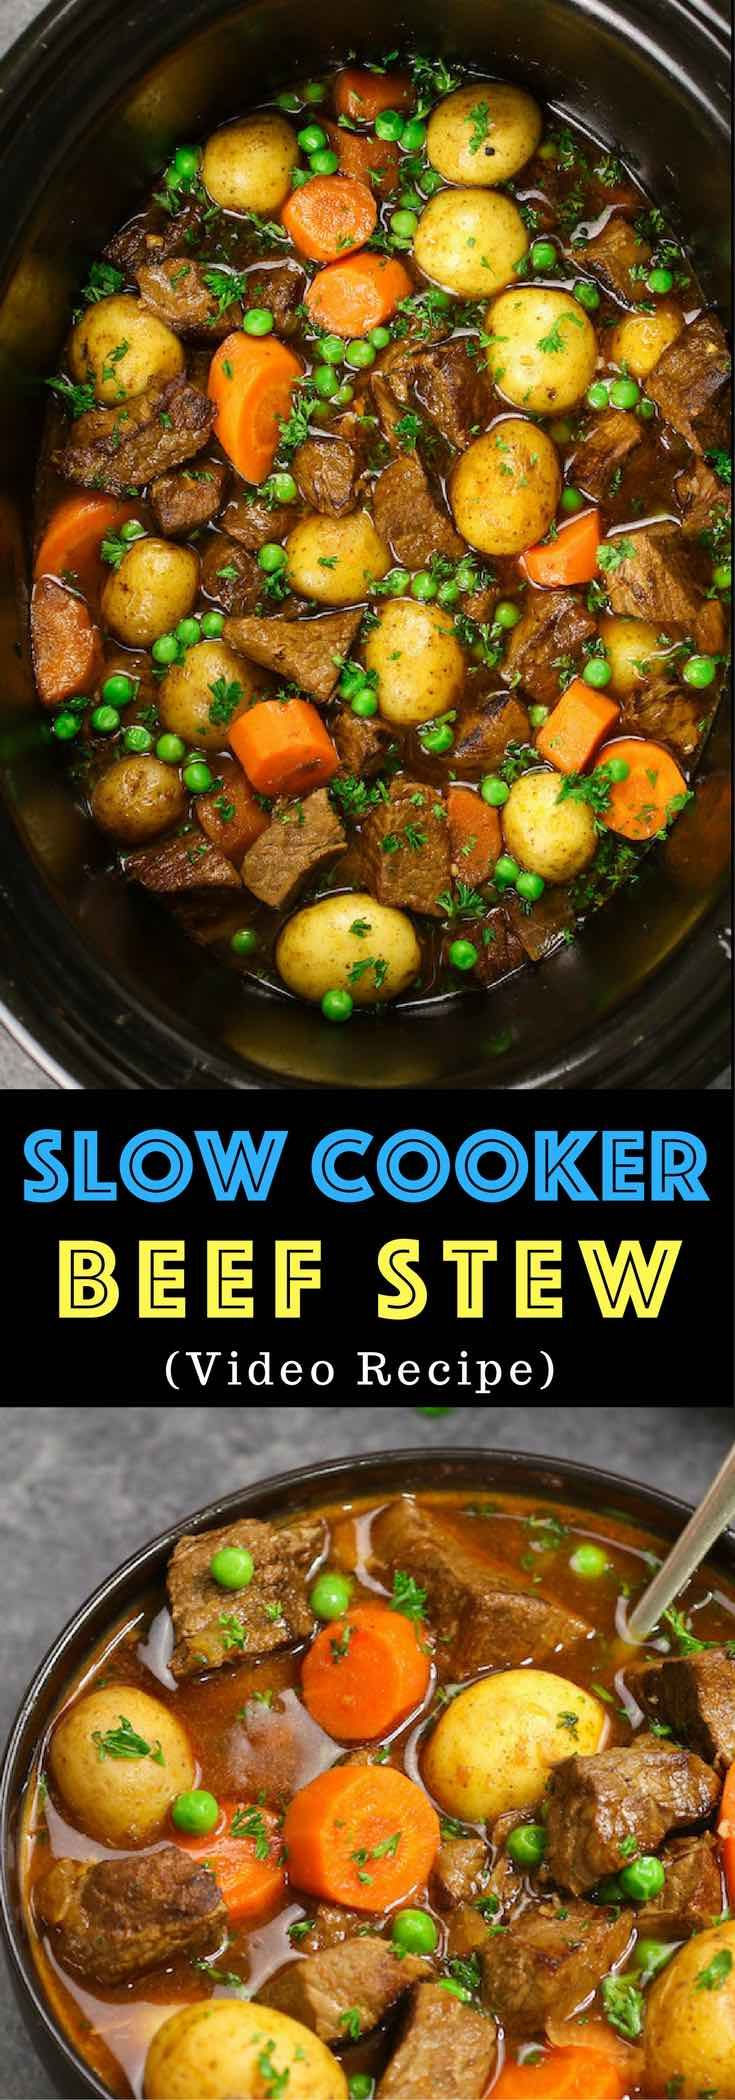 The easiest, most unbelievably delicious Slow Cooker Beef Stew with only 15 minutes of prep. See how to make it!